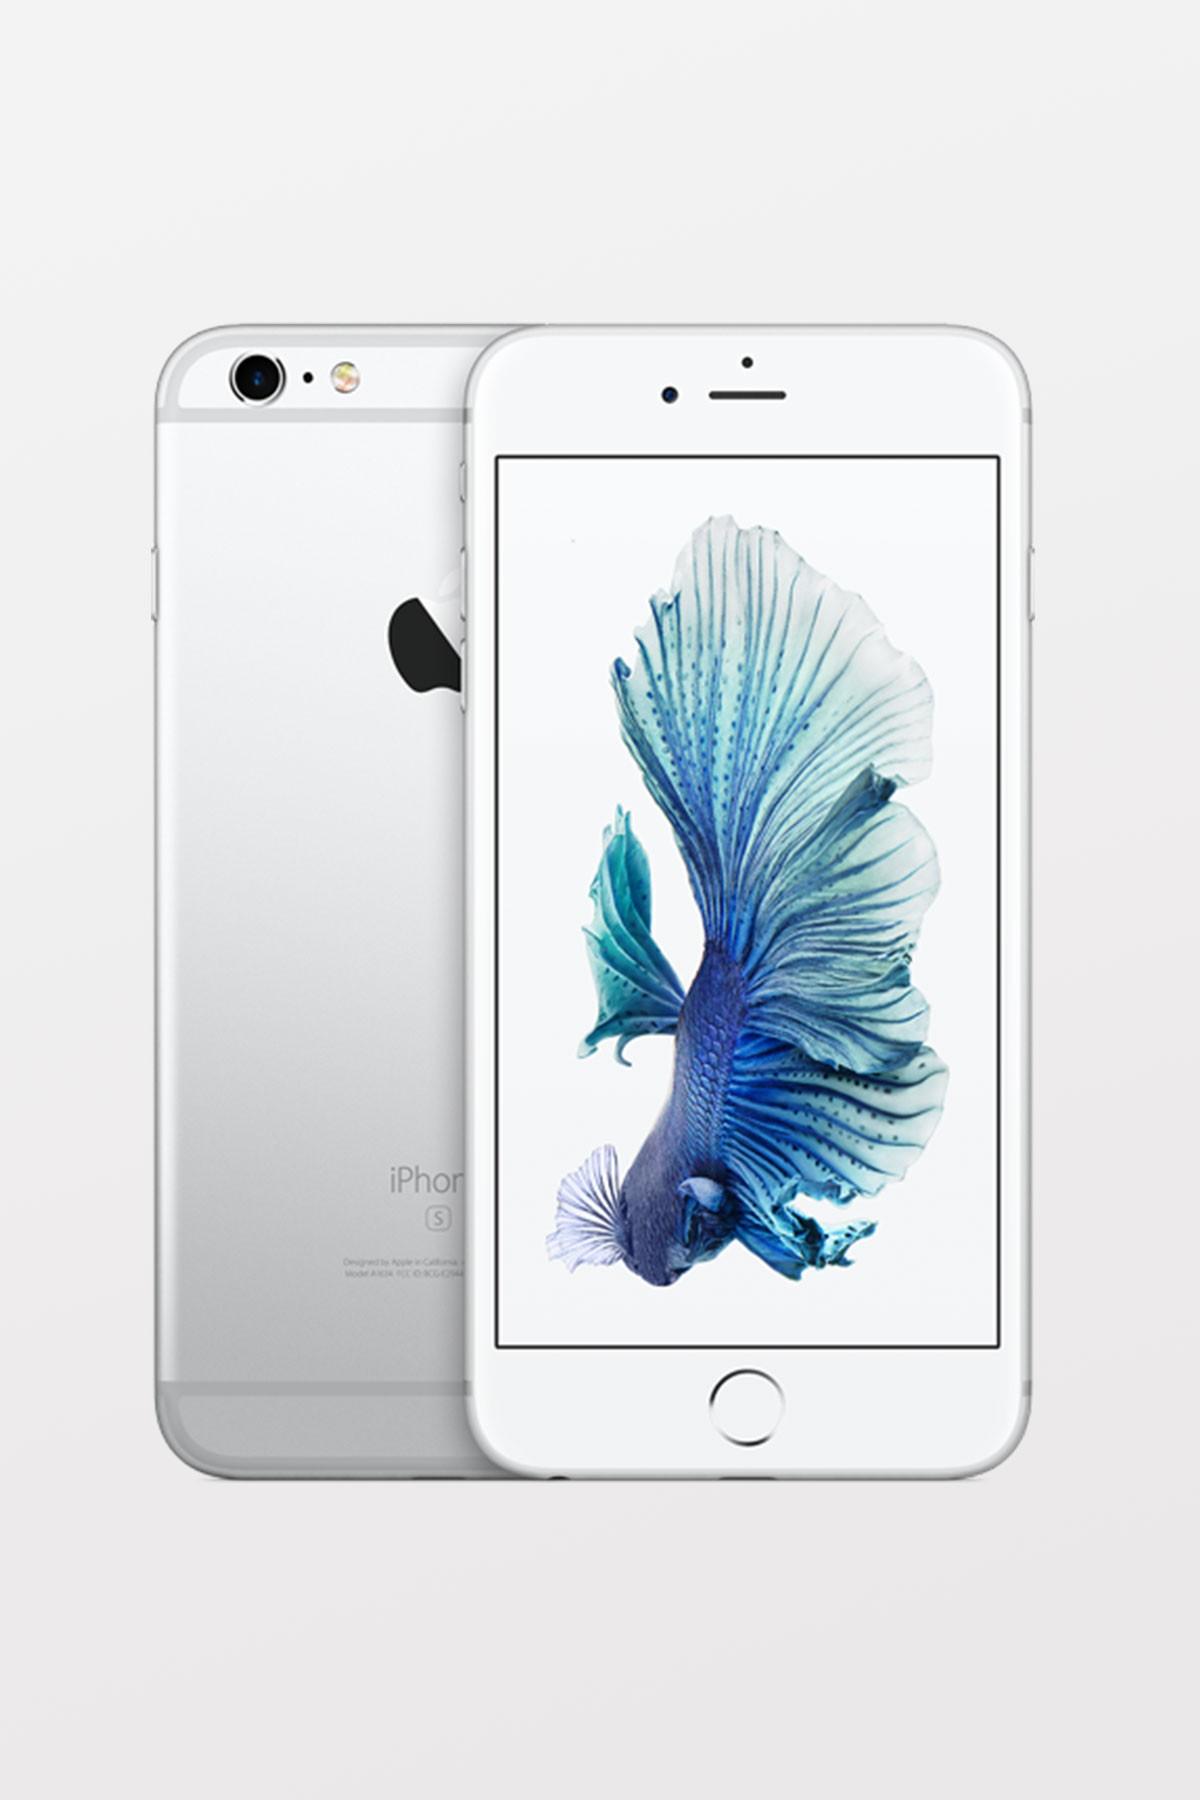 EOL Apple iPhone 6S Plus 16GB - Silver